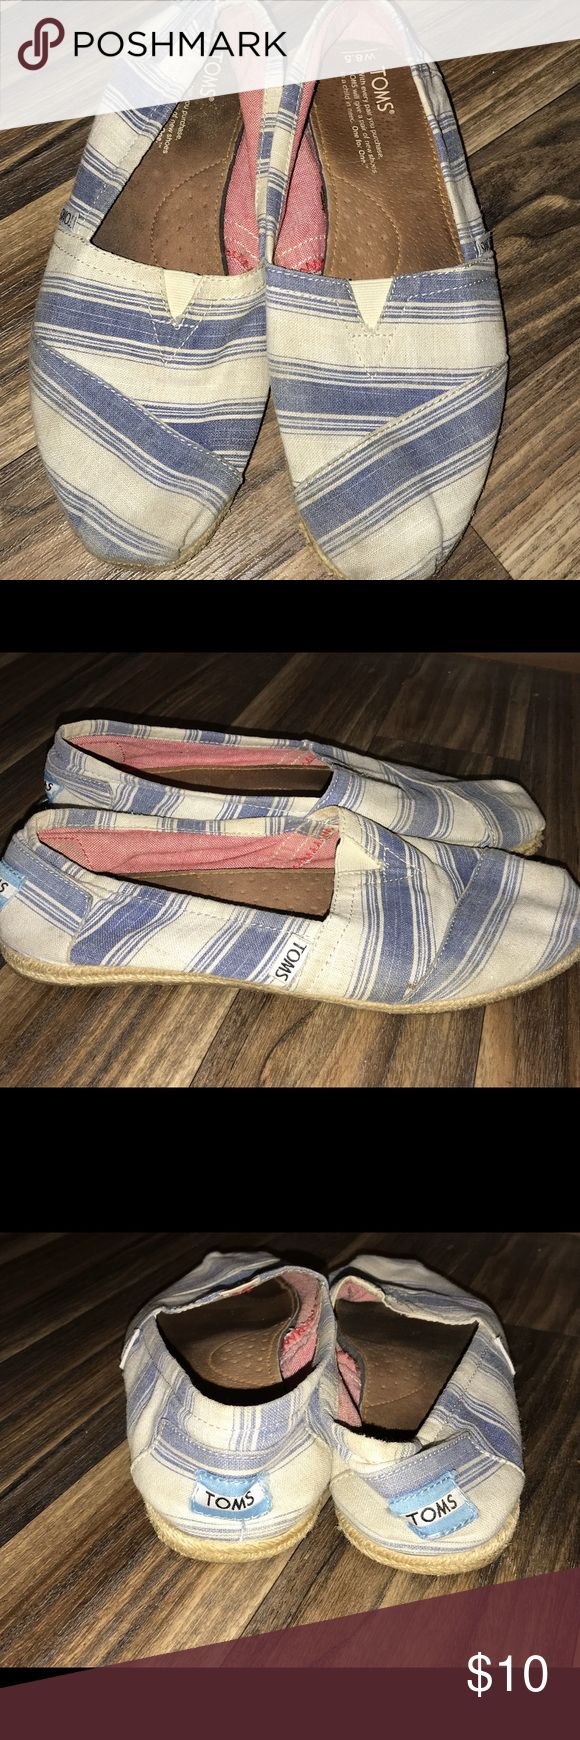 Toms Blue white shoes Size 8.5 Toms blue white shoes size 8.5, gently used condition, smoke free home, can be washed. Toms Shoes Flats & Loafers